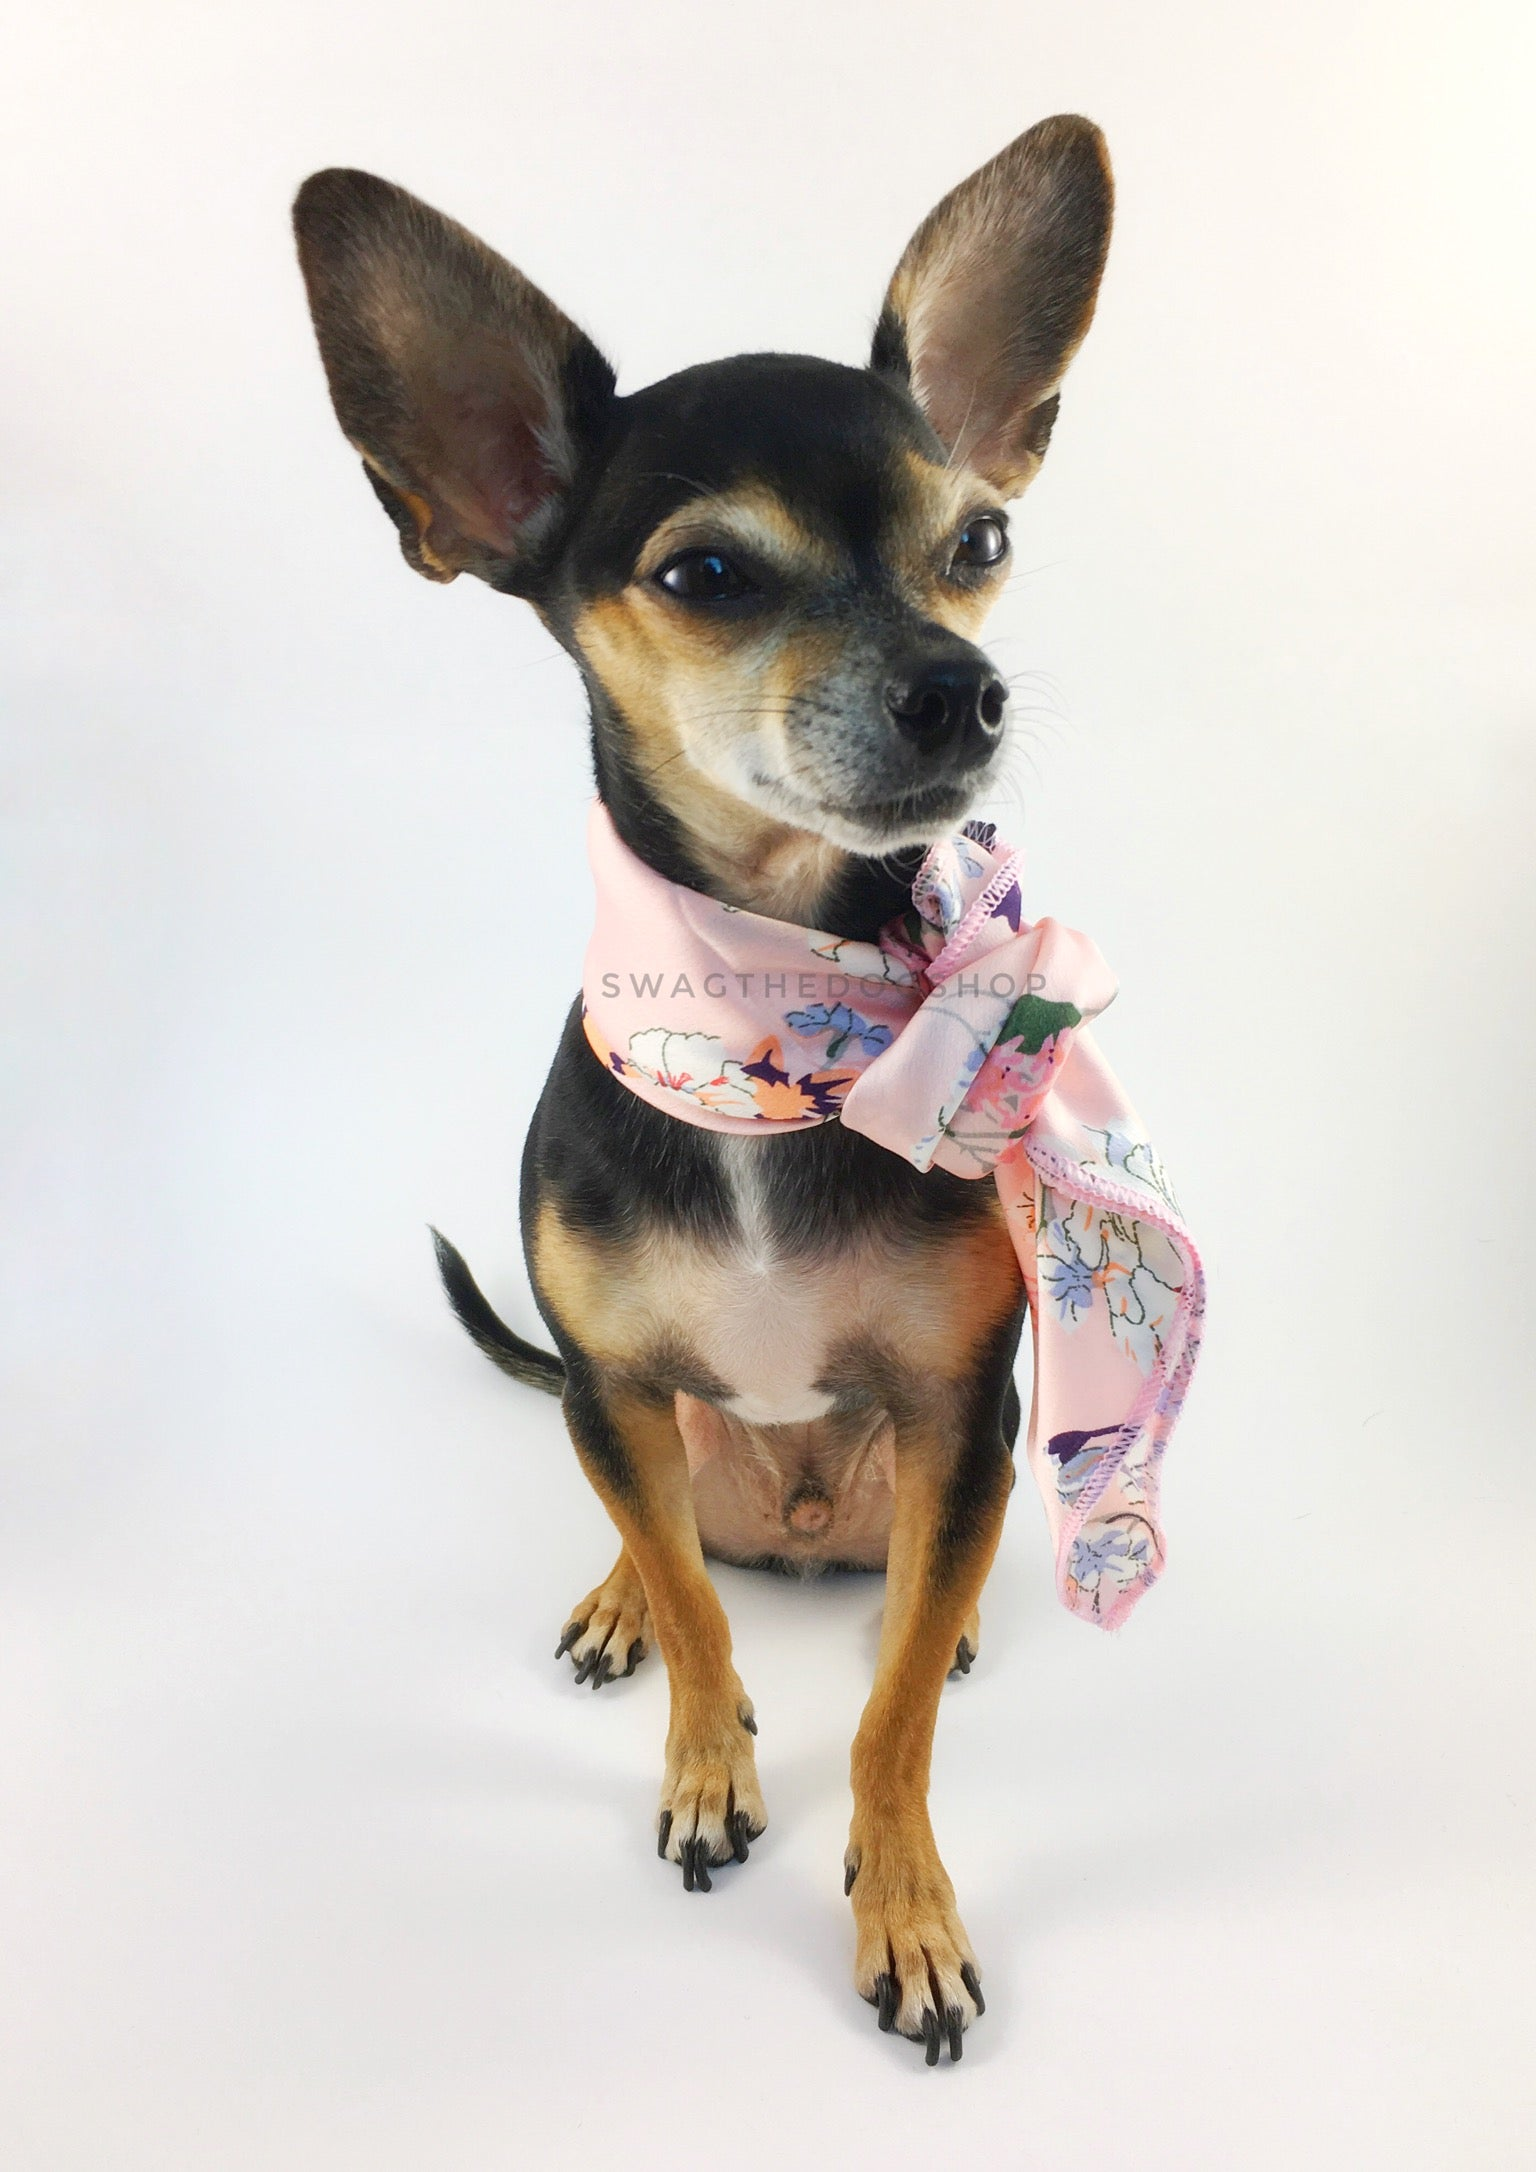 Pink Wild Flower Swagdana Scarf - Full Front View of Cute Chihuahua Wearing Swagdana Scarf as Neckerchief. Dog Bandana. Dog Scarf.